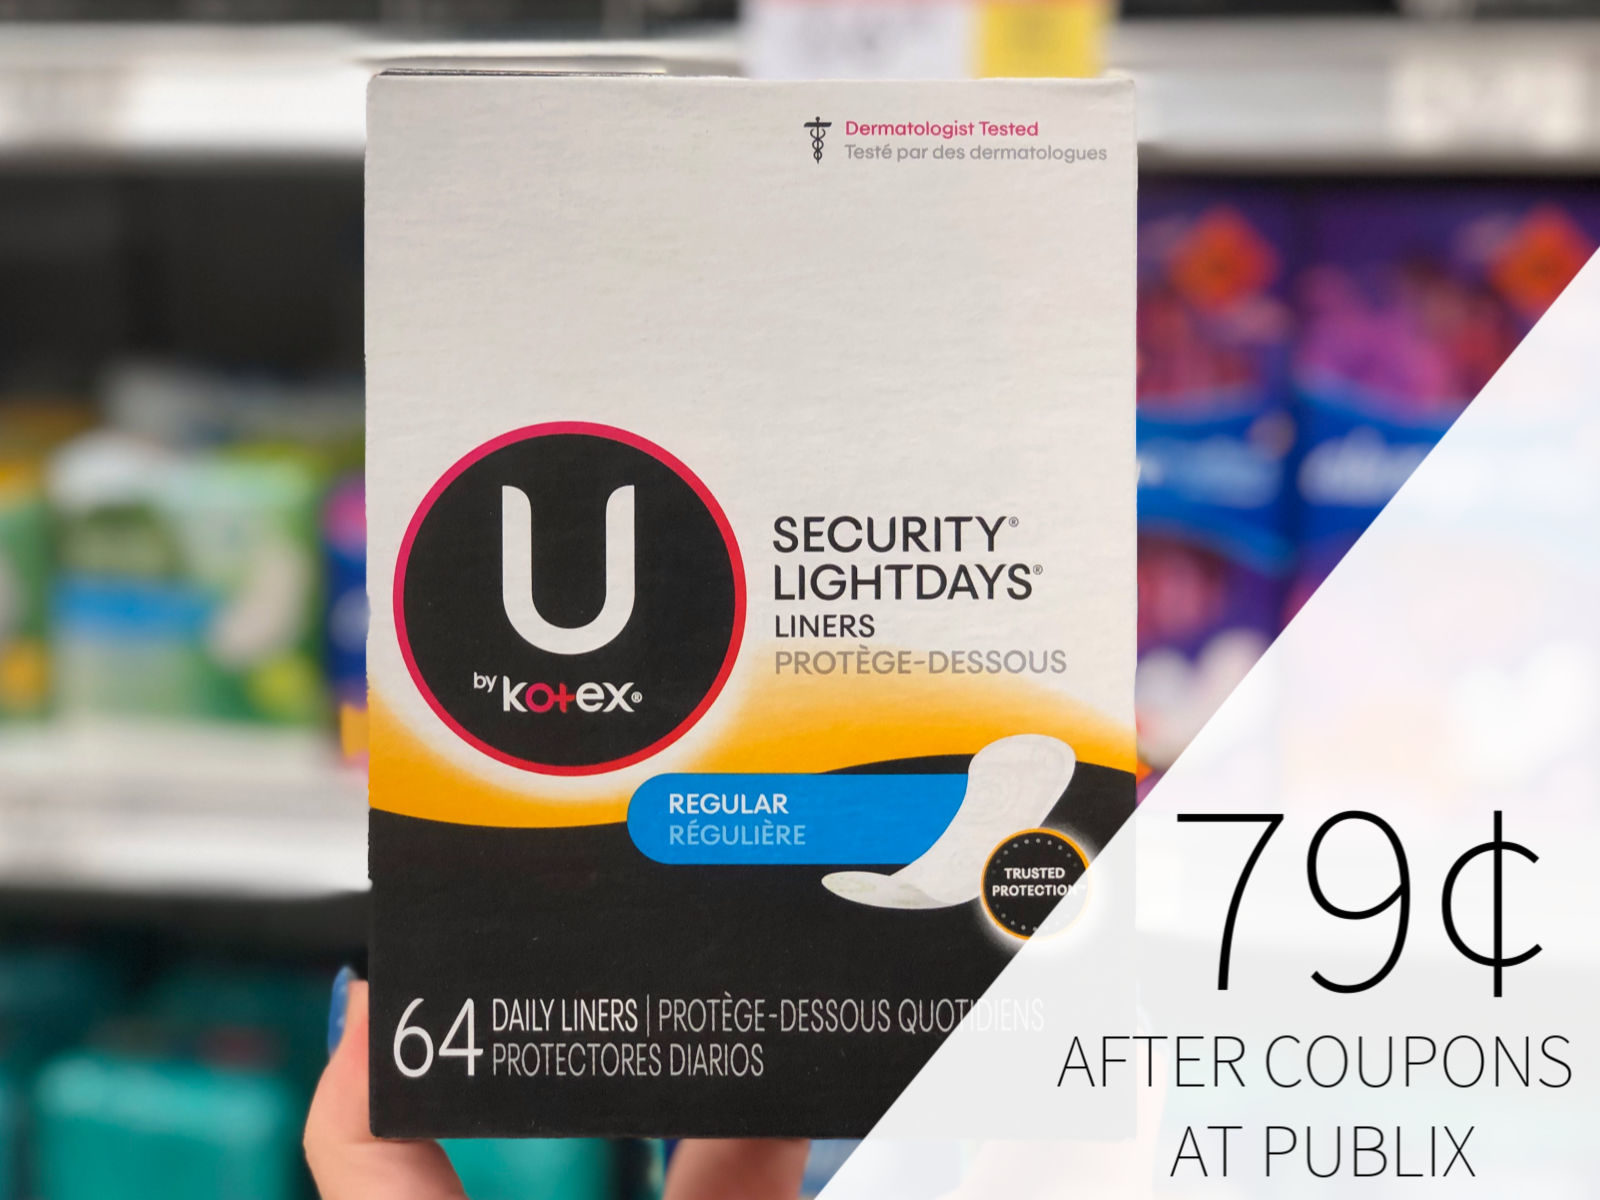 Big Savings On U by Kotex, Poise, & Depend Products At Publix - Time To Stock Up! on I Heart Publix